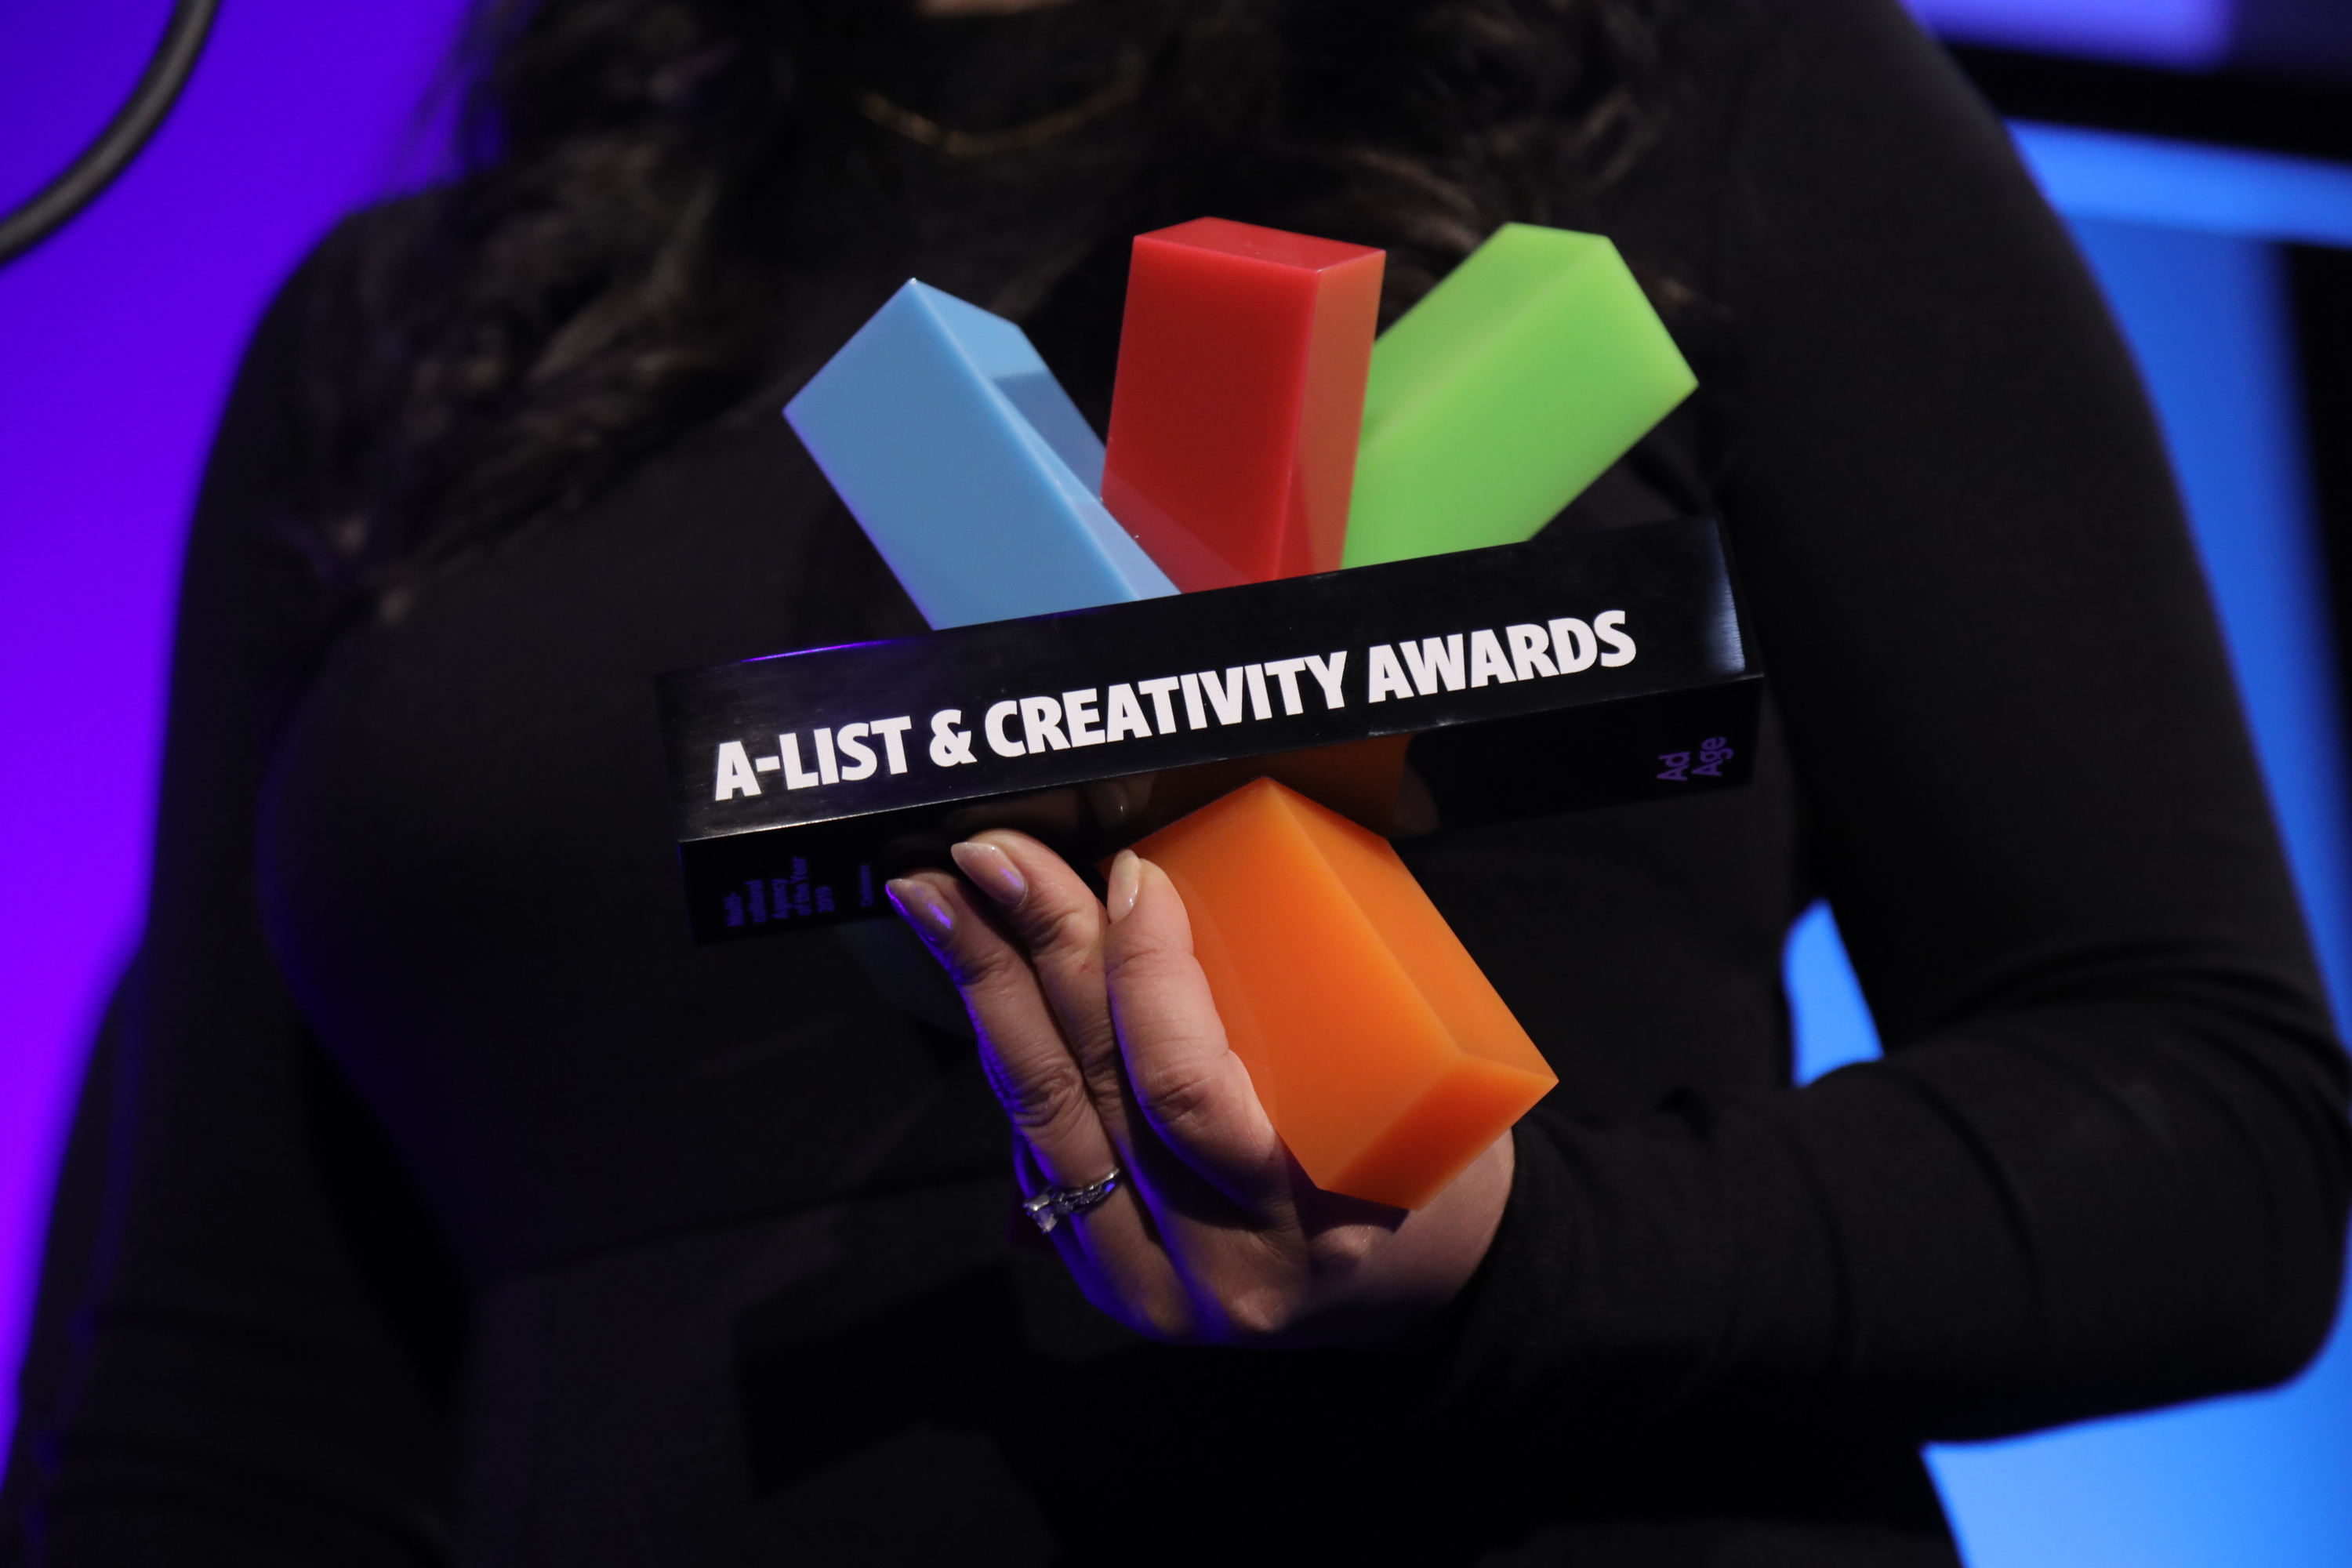 The Ad Age 2021 A-List and Creativity Awards are open for entries